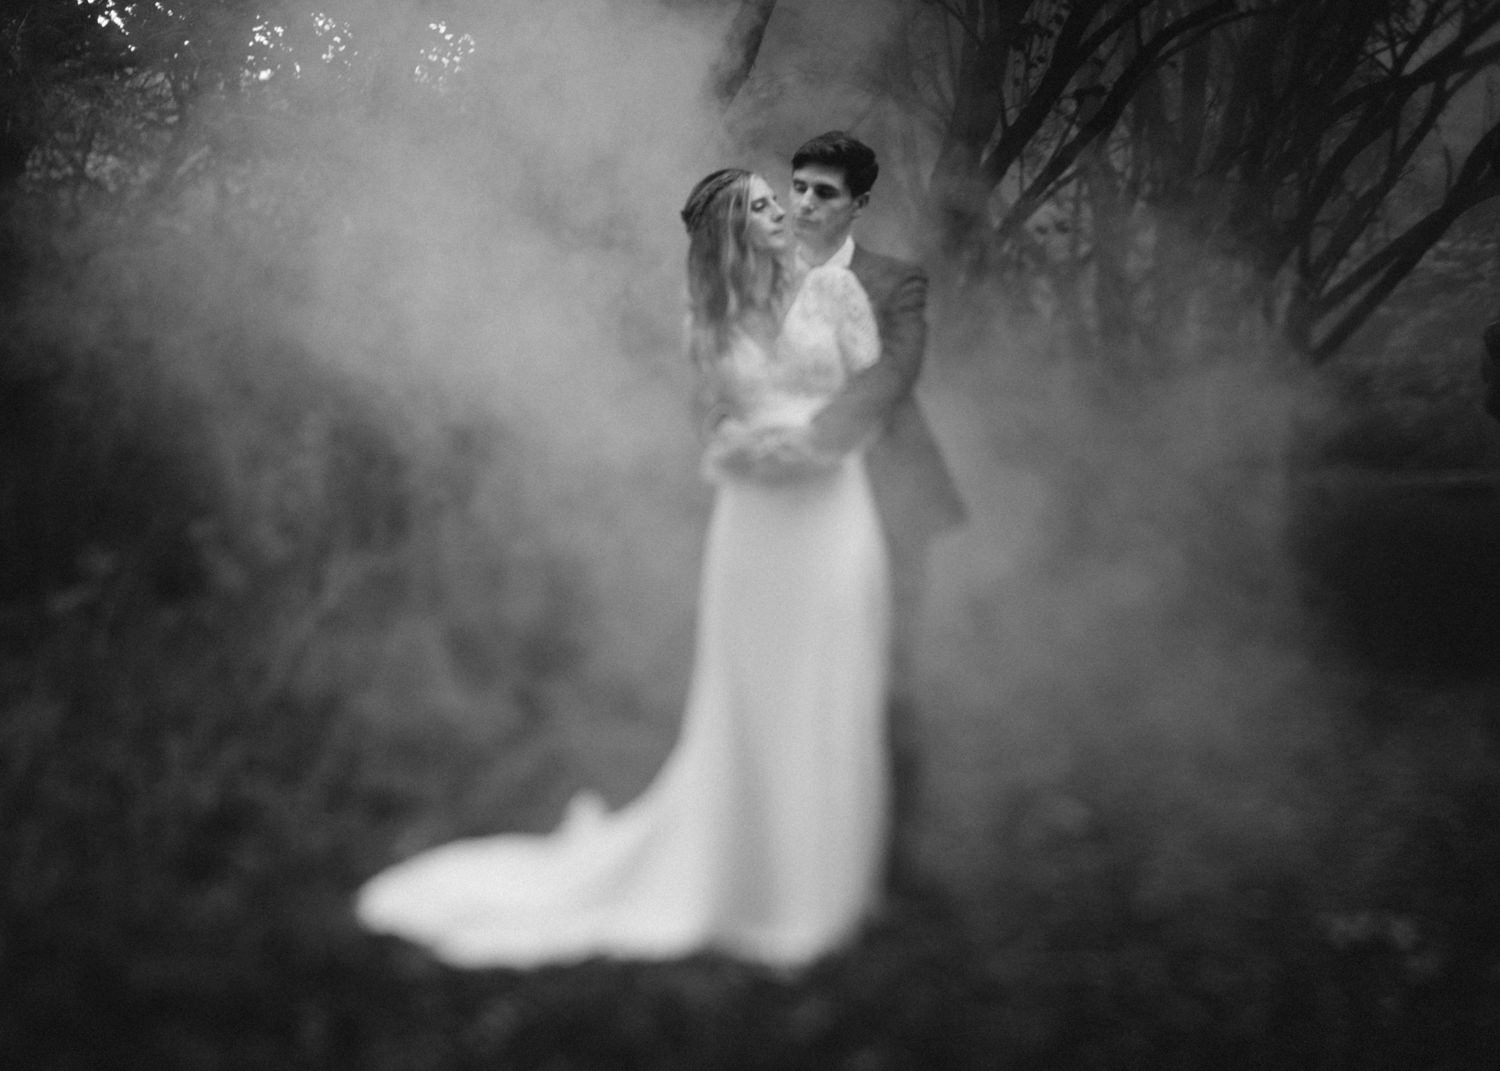 Married couple cuddling in a forest surrounded by smoke